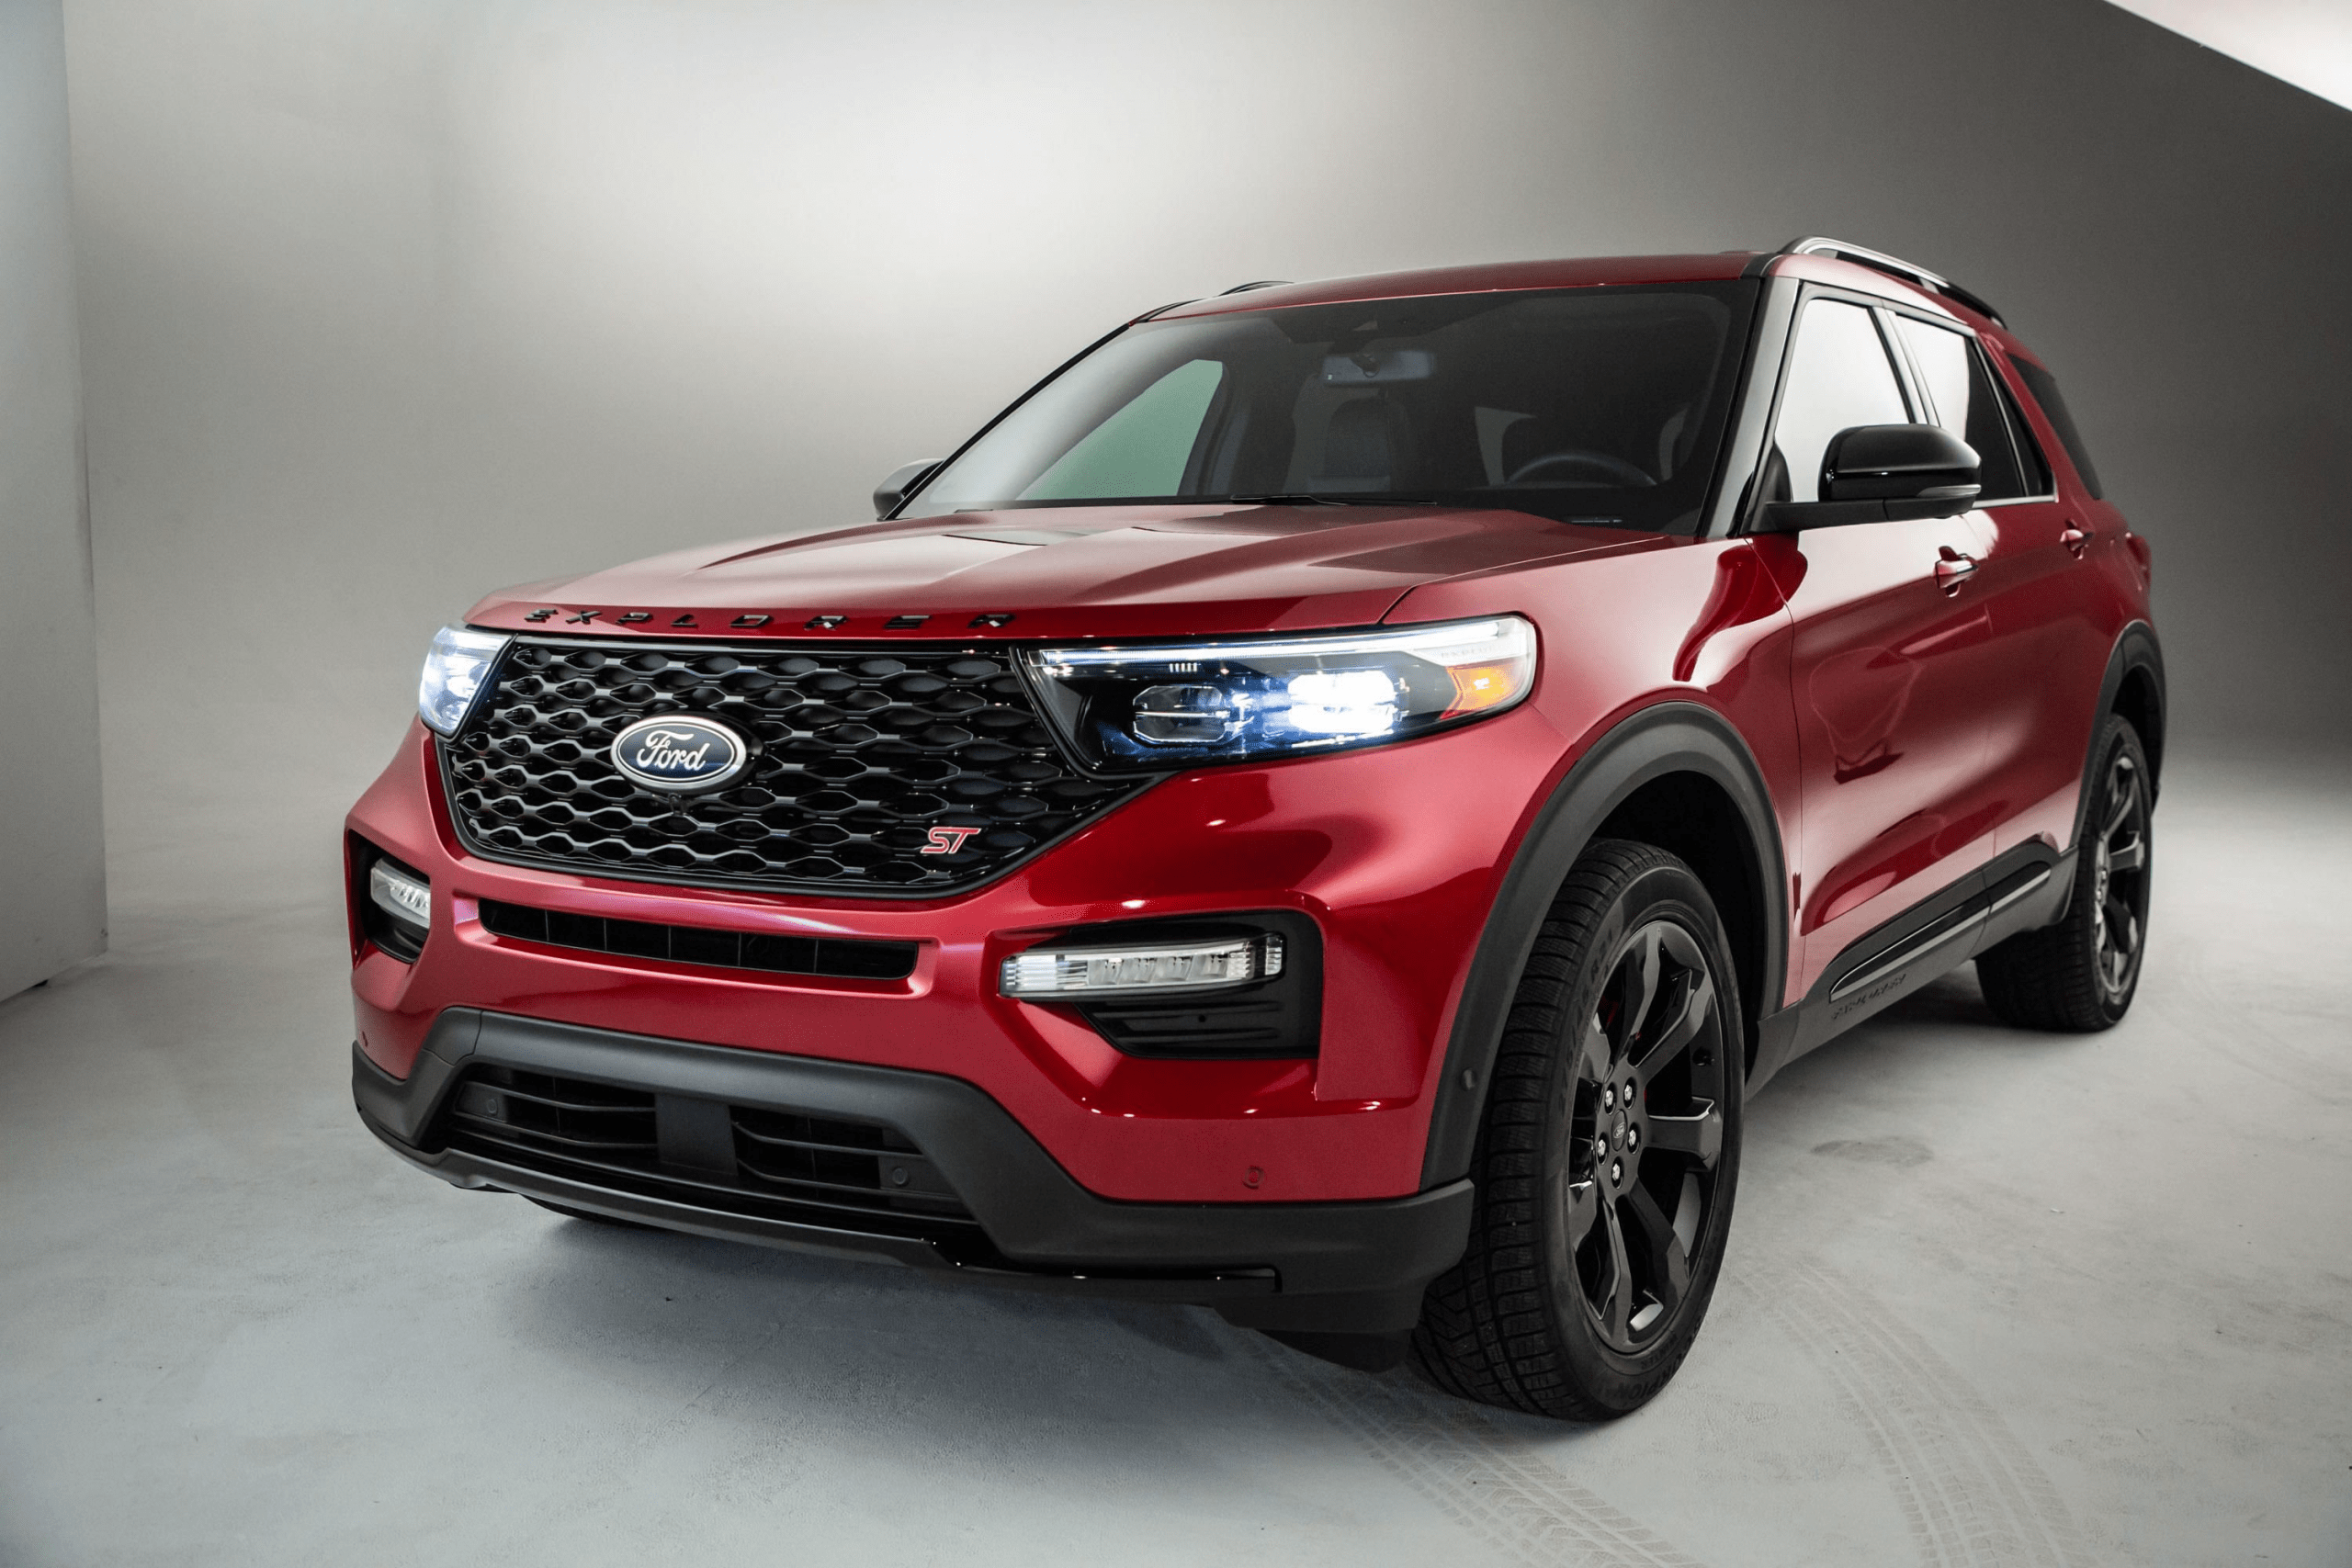 2021 ford Explorer Sports Prices in 2020 Ford explorer